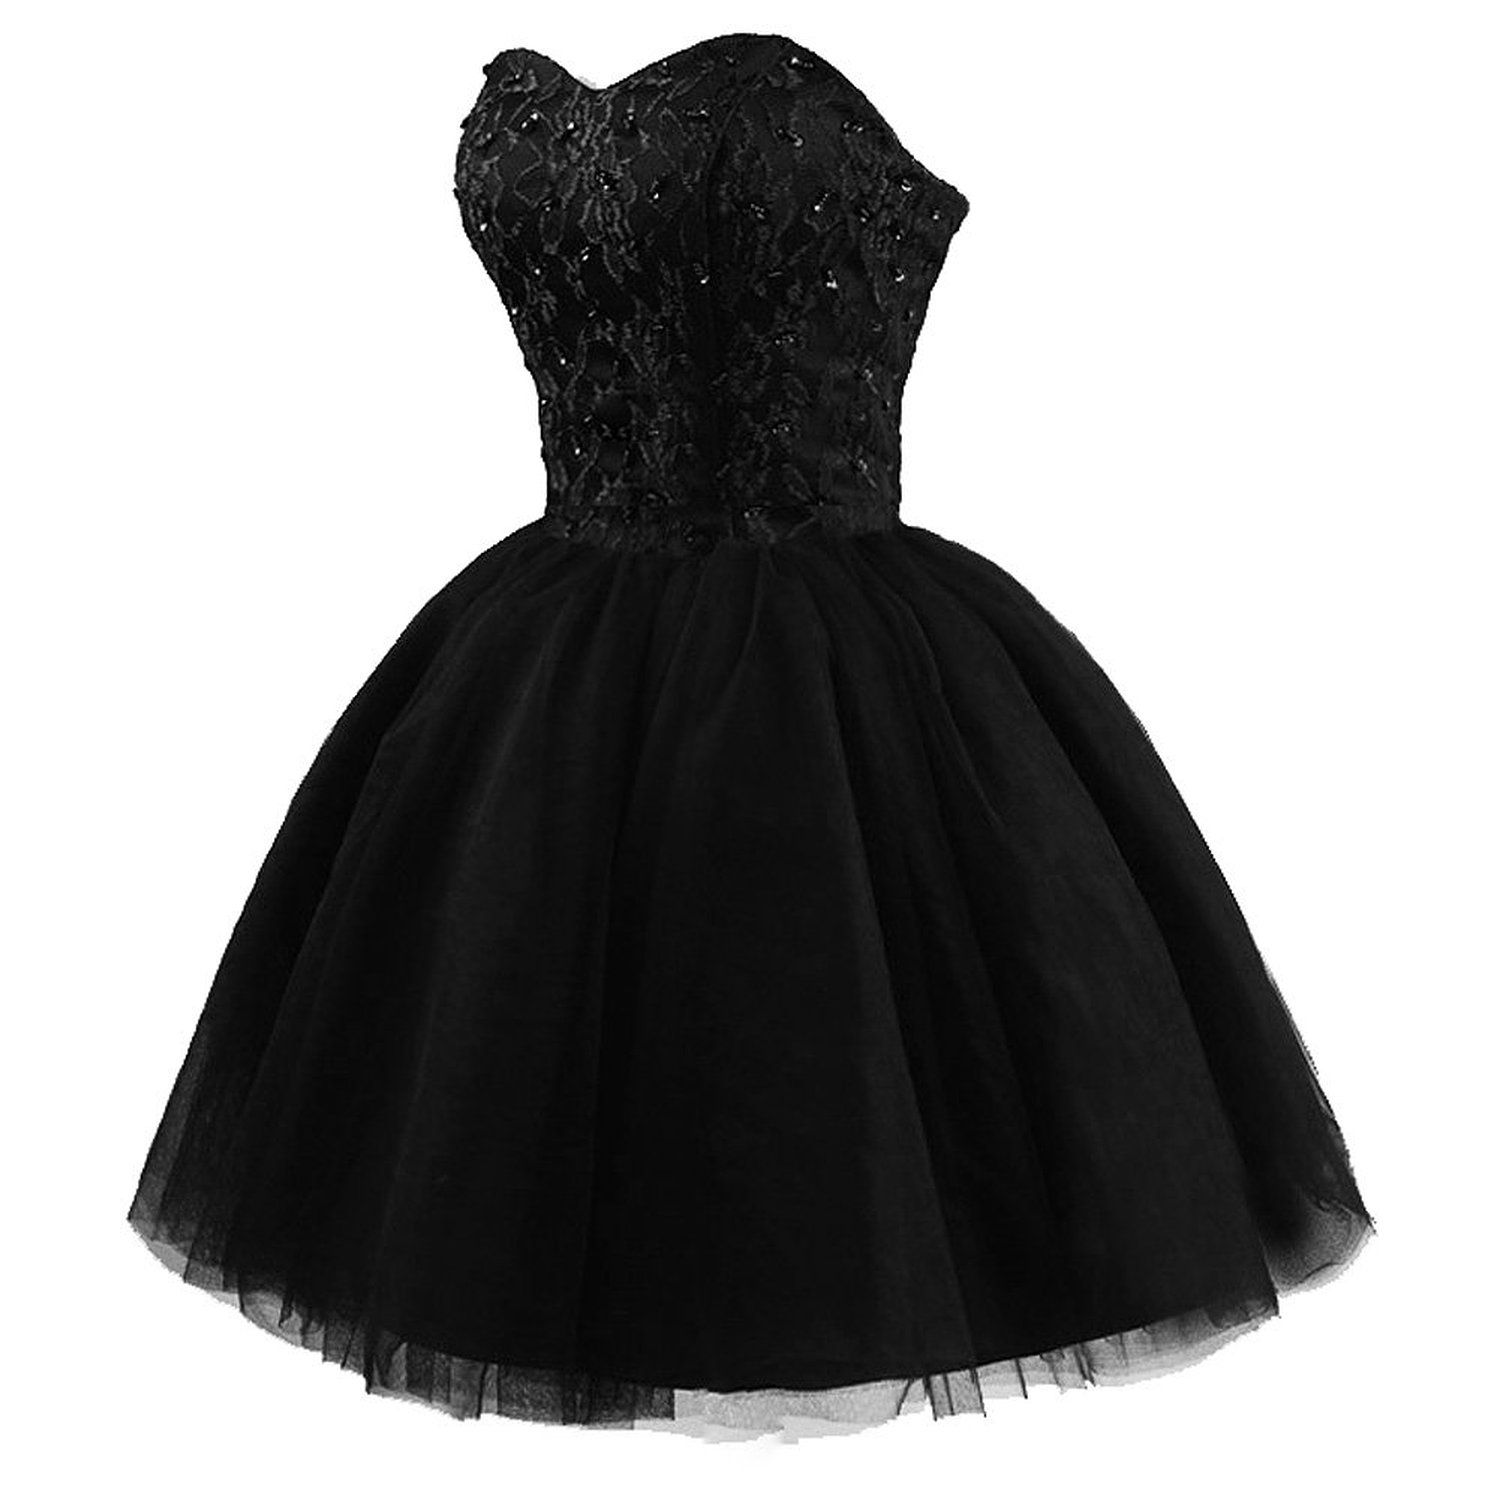 Black dress tumblr -  17 Best Ideas About Black Dress Tumblr On Pinterest Black Silk